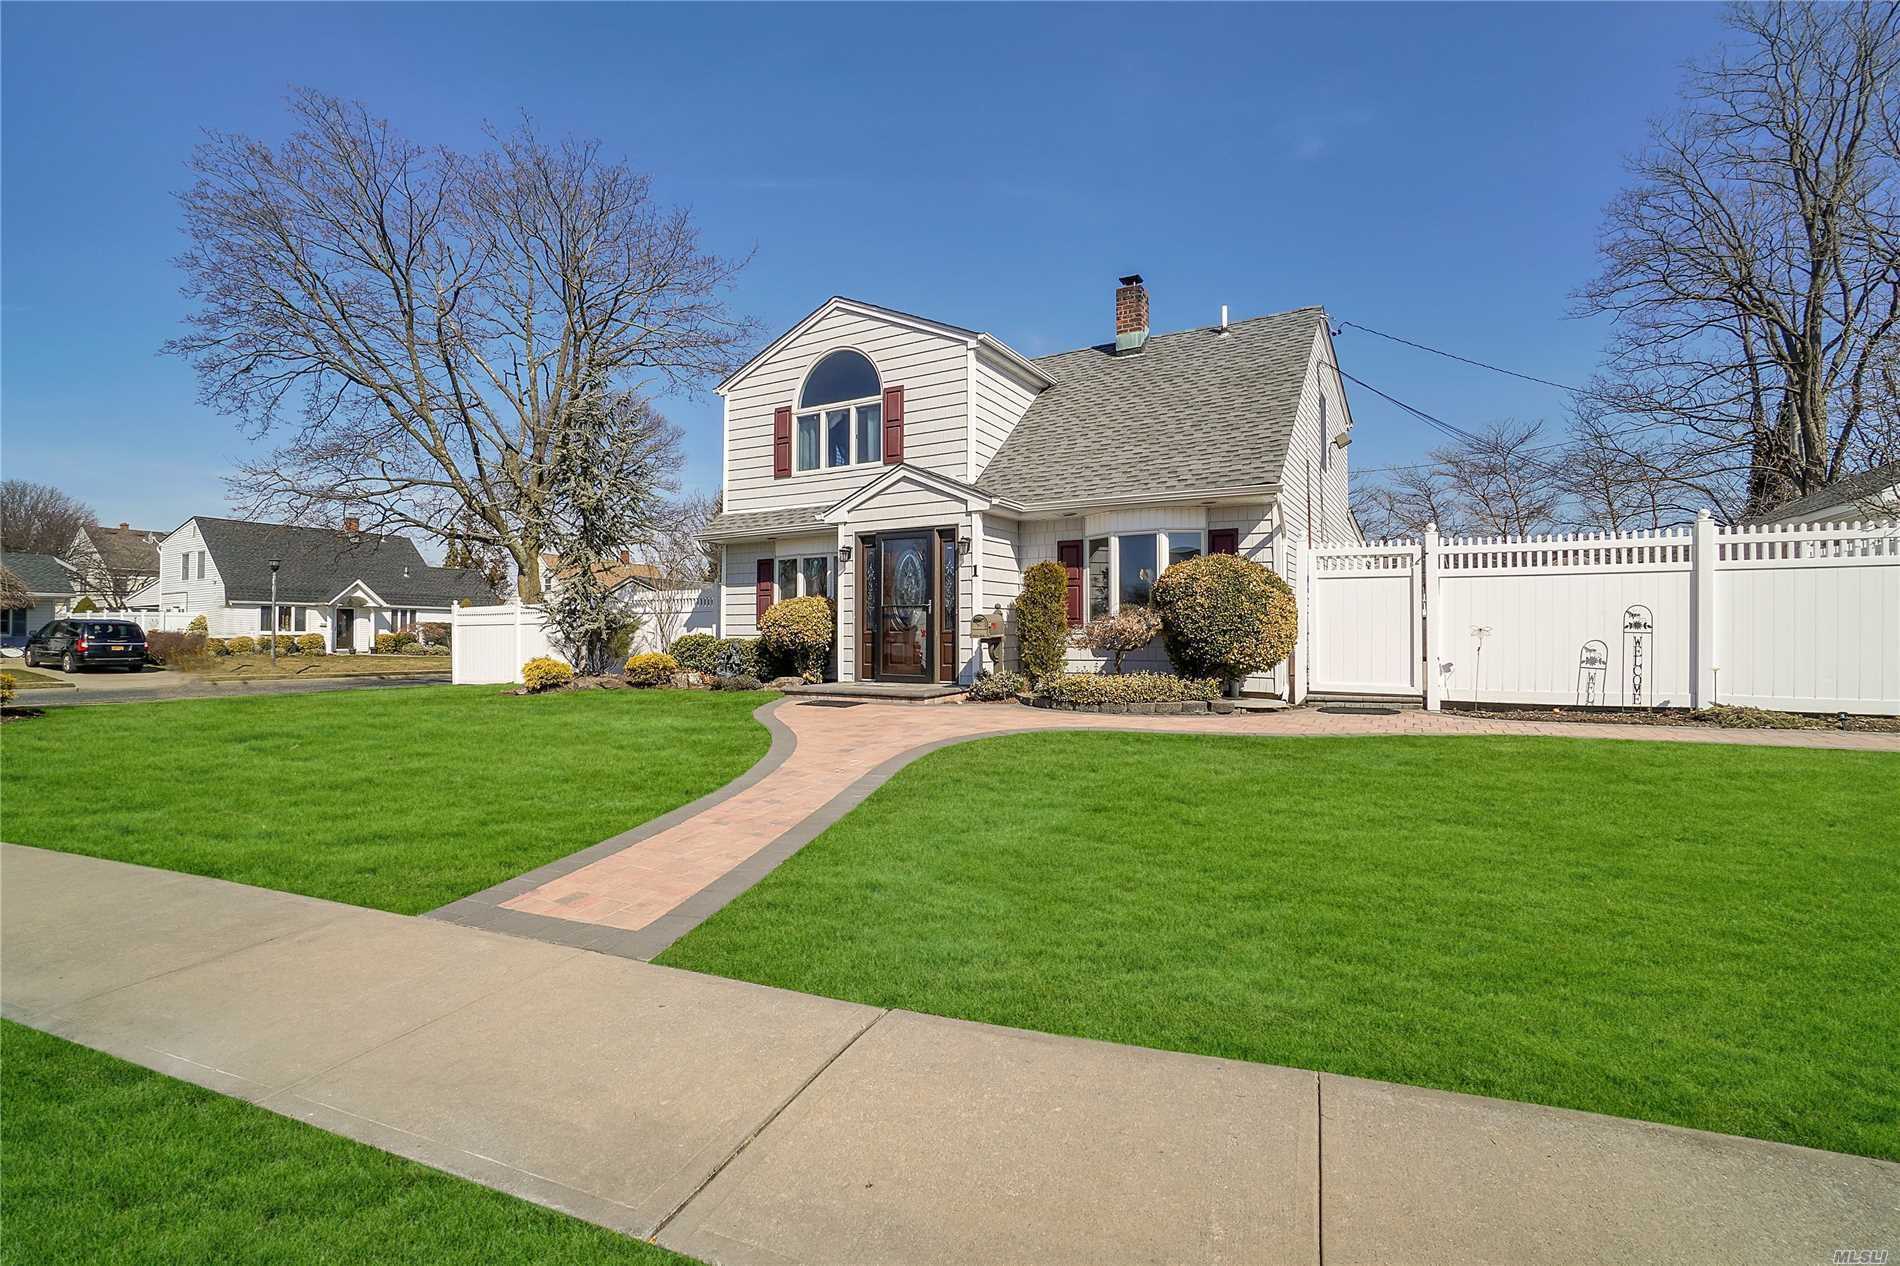 Mint Colonial: All Formal-Sized Rooms, Extended Eik w/Granite Counter and Center island, Ss Appl's, Convection Microwave, Skylites, Extended Family Room, Flr, Fdr, Mud Room/Laundry, Updated Baths, Furnace/Siding/Roof 5yrs, 200 Amps, Sub-Panel Upstairs, Master Bedroom Cathedral Ceiling, Ceiling Fans, 1.5 Car Det Garage, Room for 6 cars in Driveway, Over-sized Professional Landscape 87x101 Property, Abbey Lane Elementary, Wisdom Middle School, Division HS